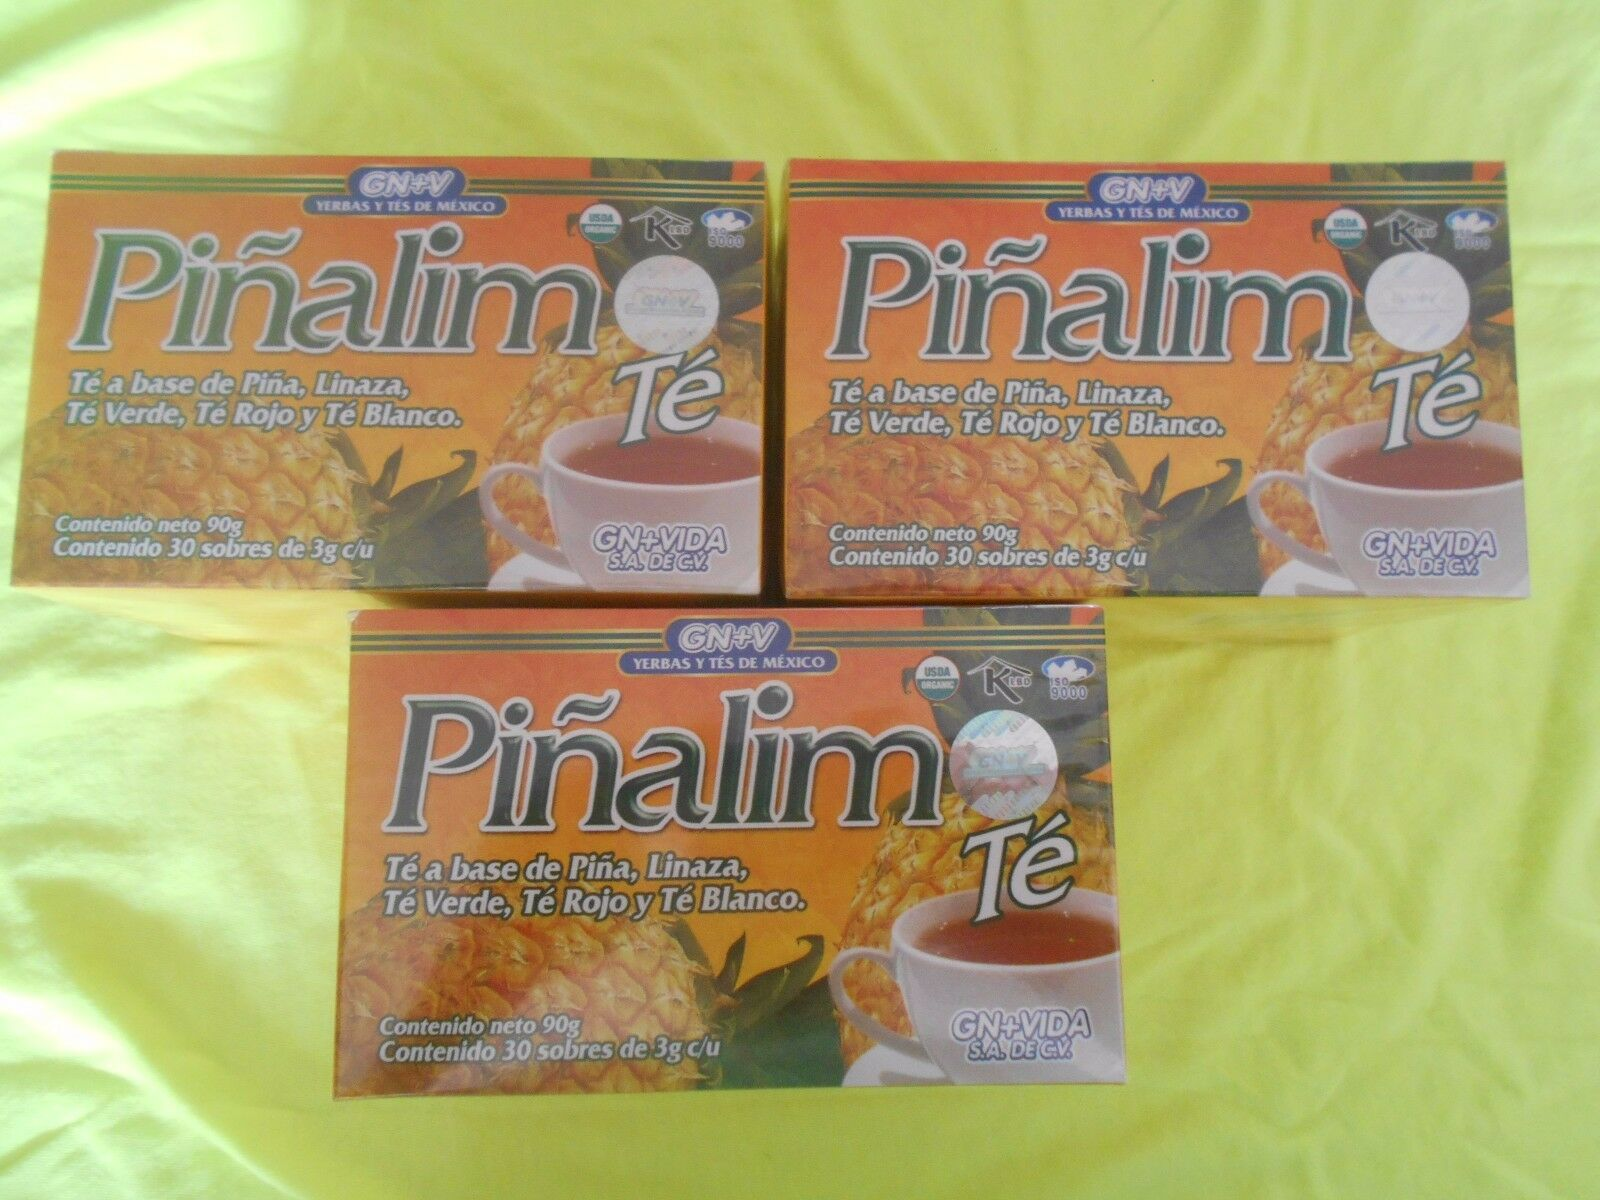 3 x PIÑALIM TEA GN+VIDA . PINALIM TEA (3 Boxes)  DIET. DETOX. WEIGHT CONTROL.